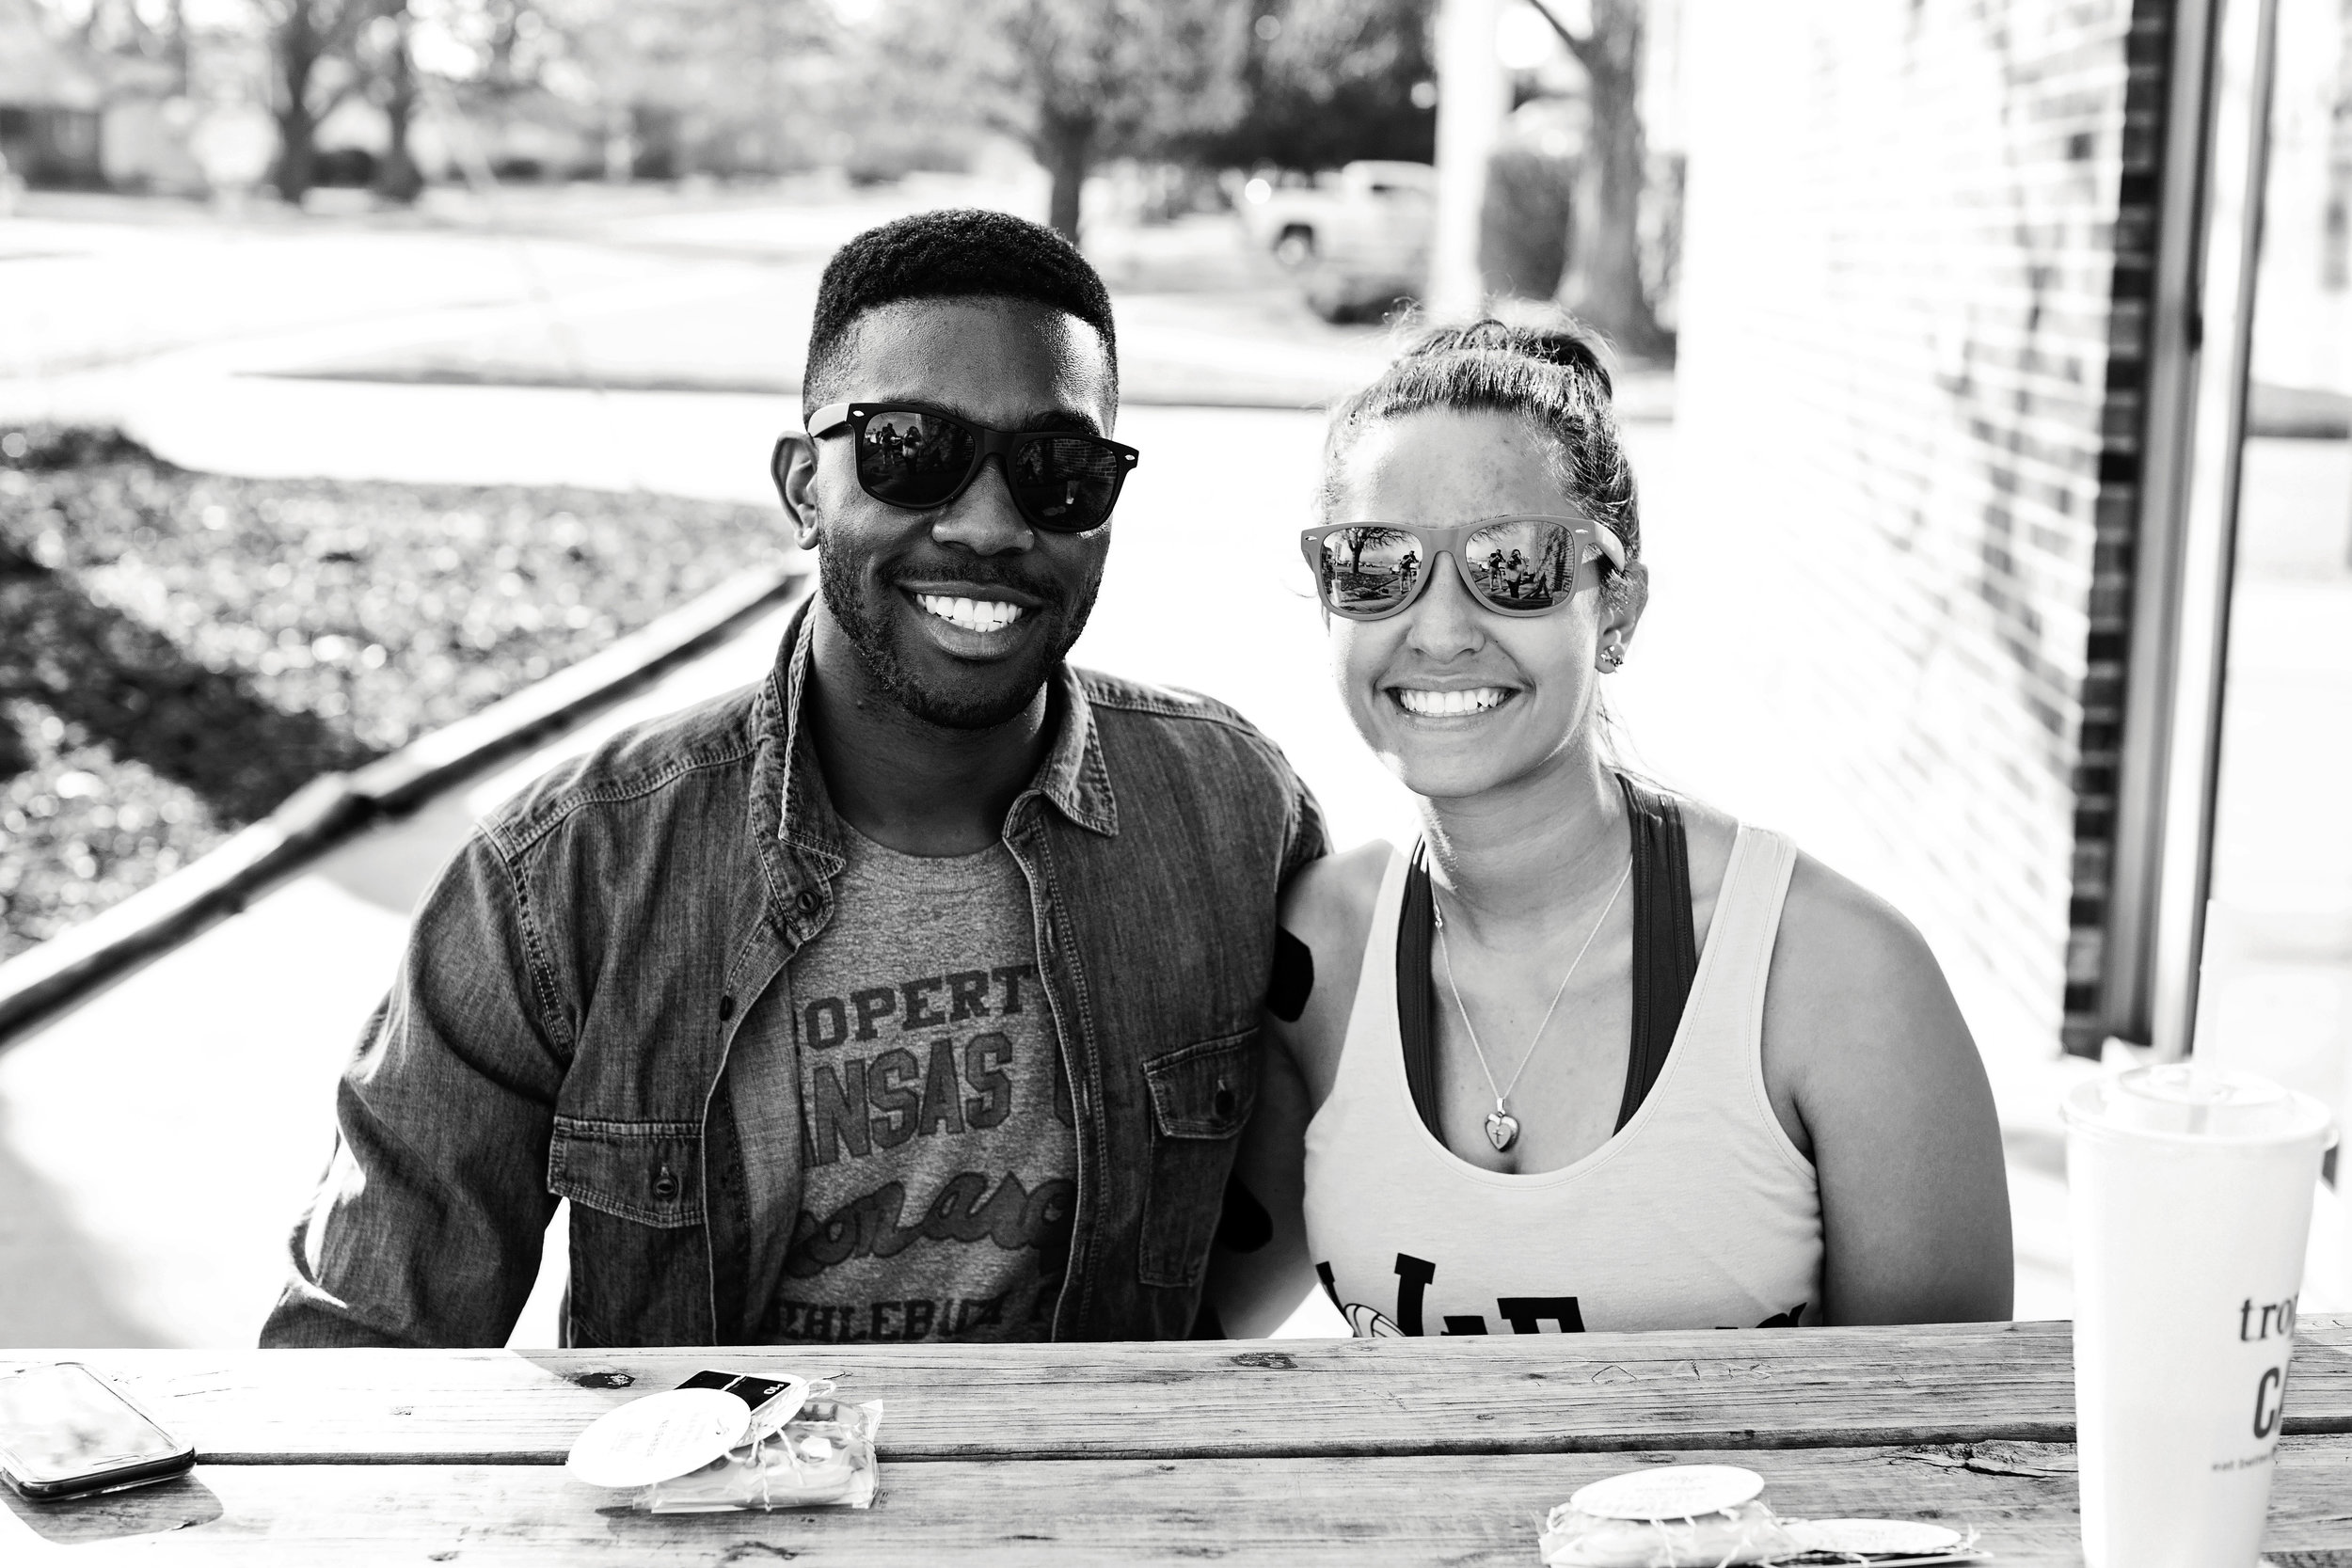 Nate S. and Bri H. - Two friends who enjoy working out. Nate graduated from MSU and is now pursuing acting in Los Angeles. Bri spends her free time volunteering with special olympics.